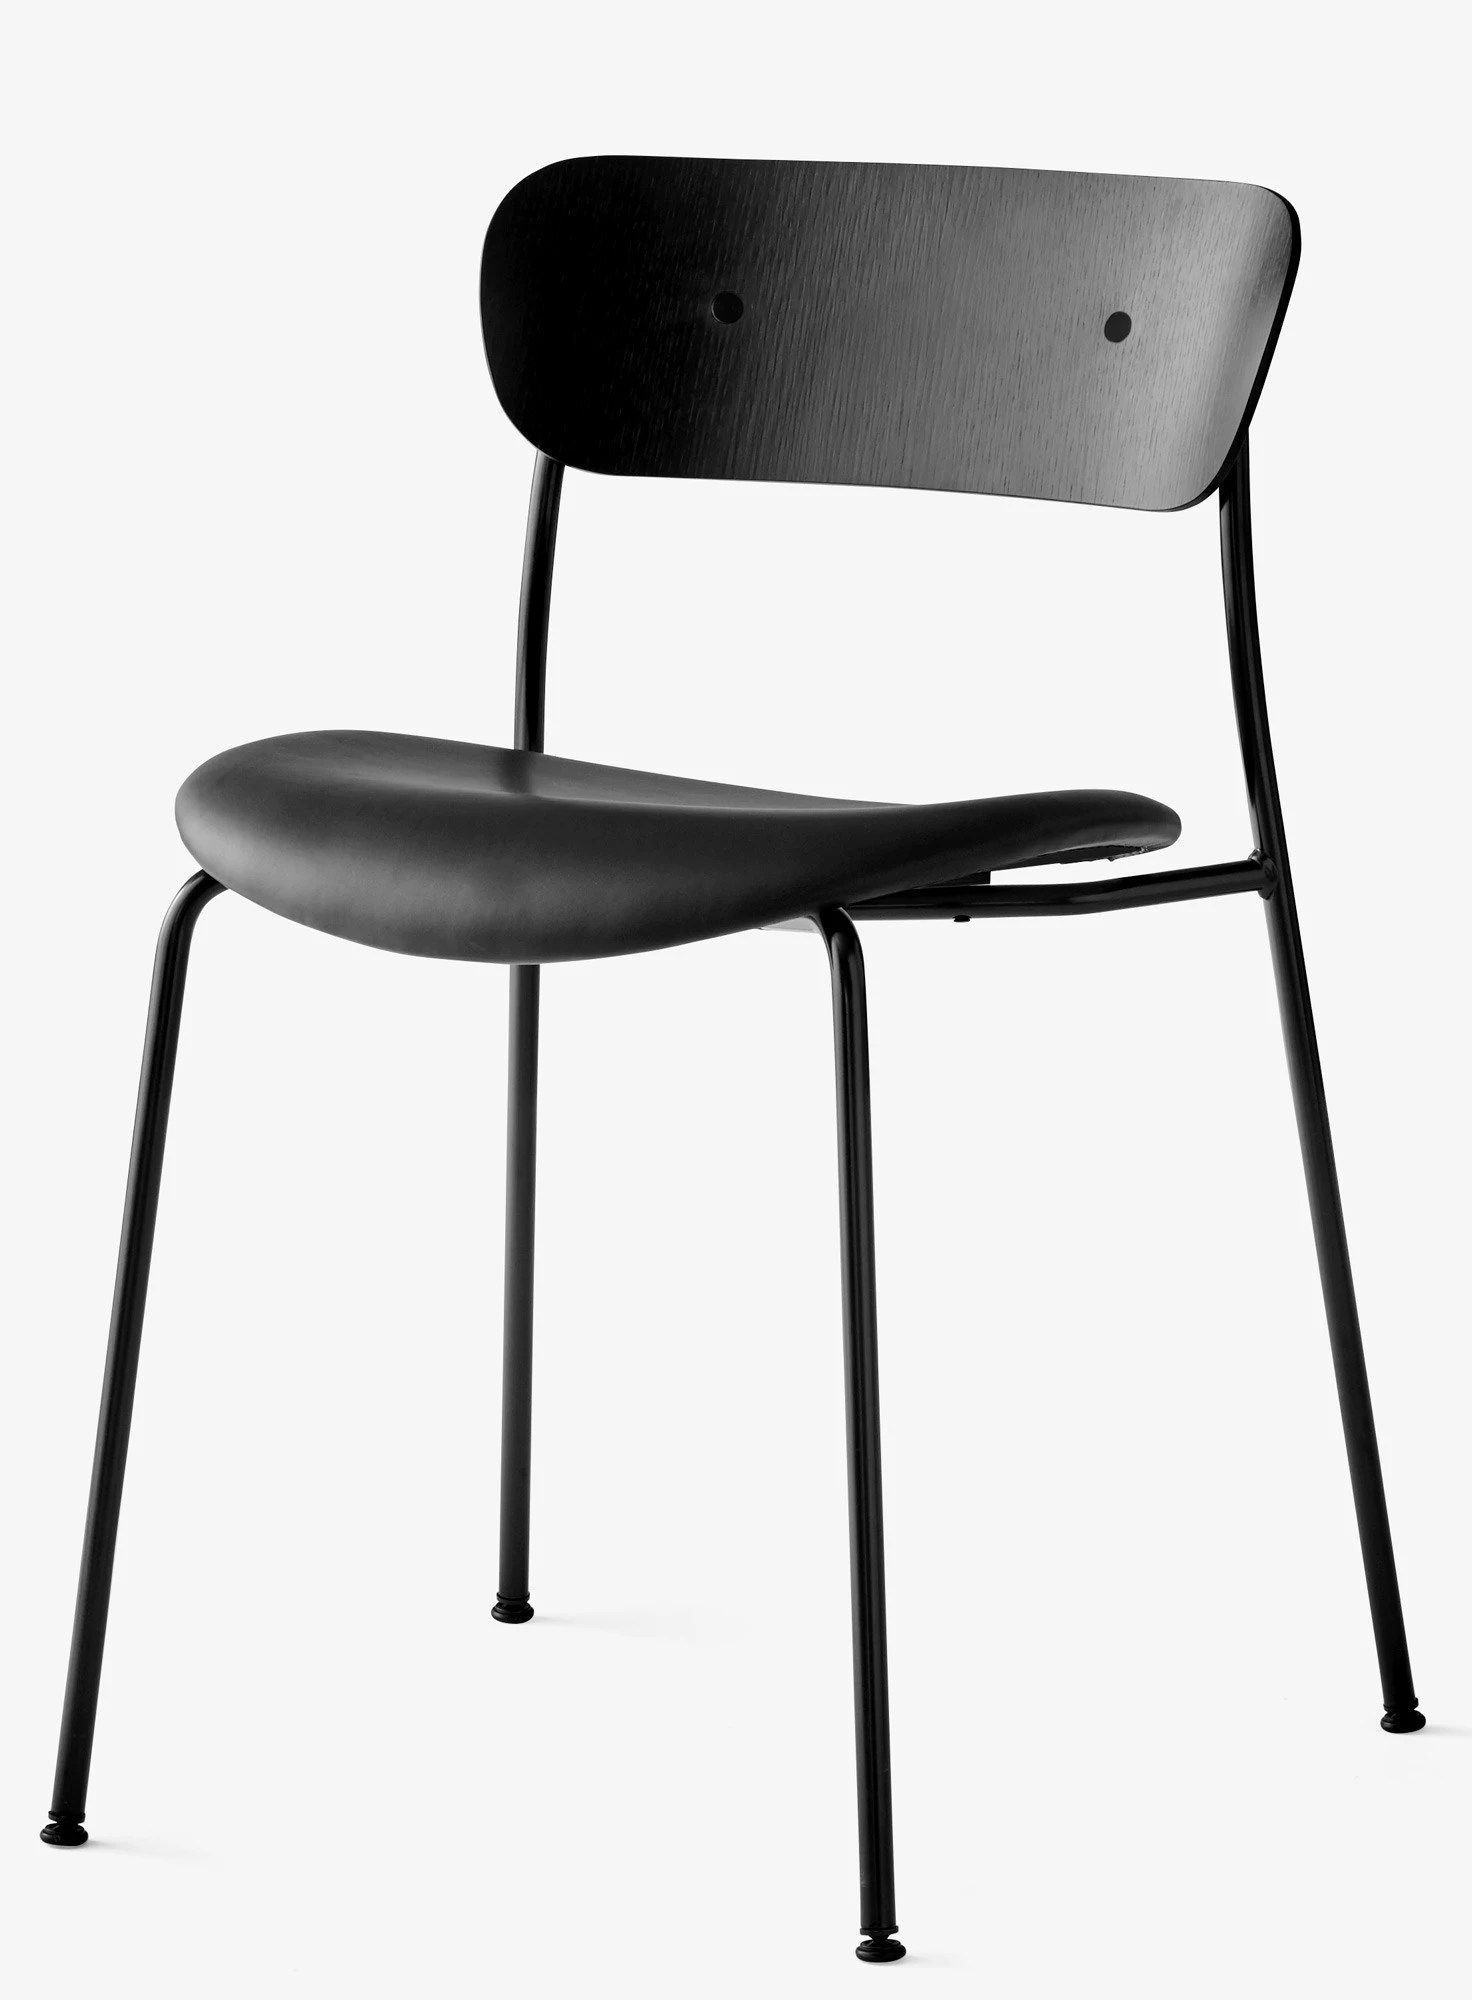 &tradition Tradition Pavilion Av3 Chair